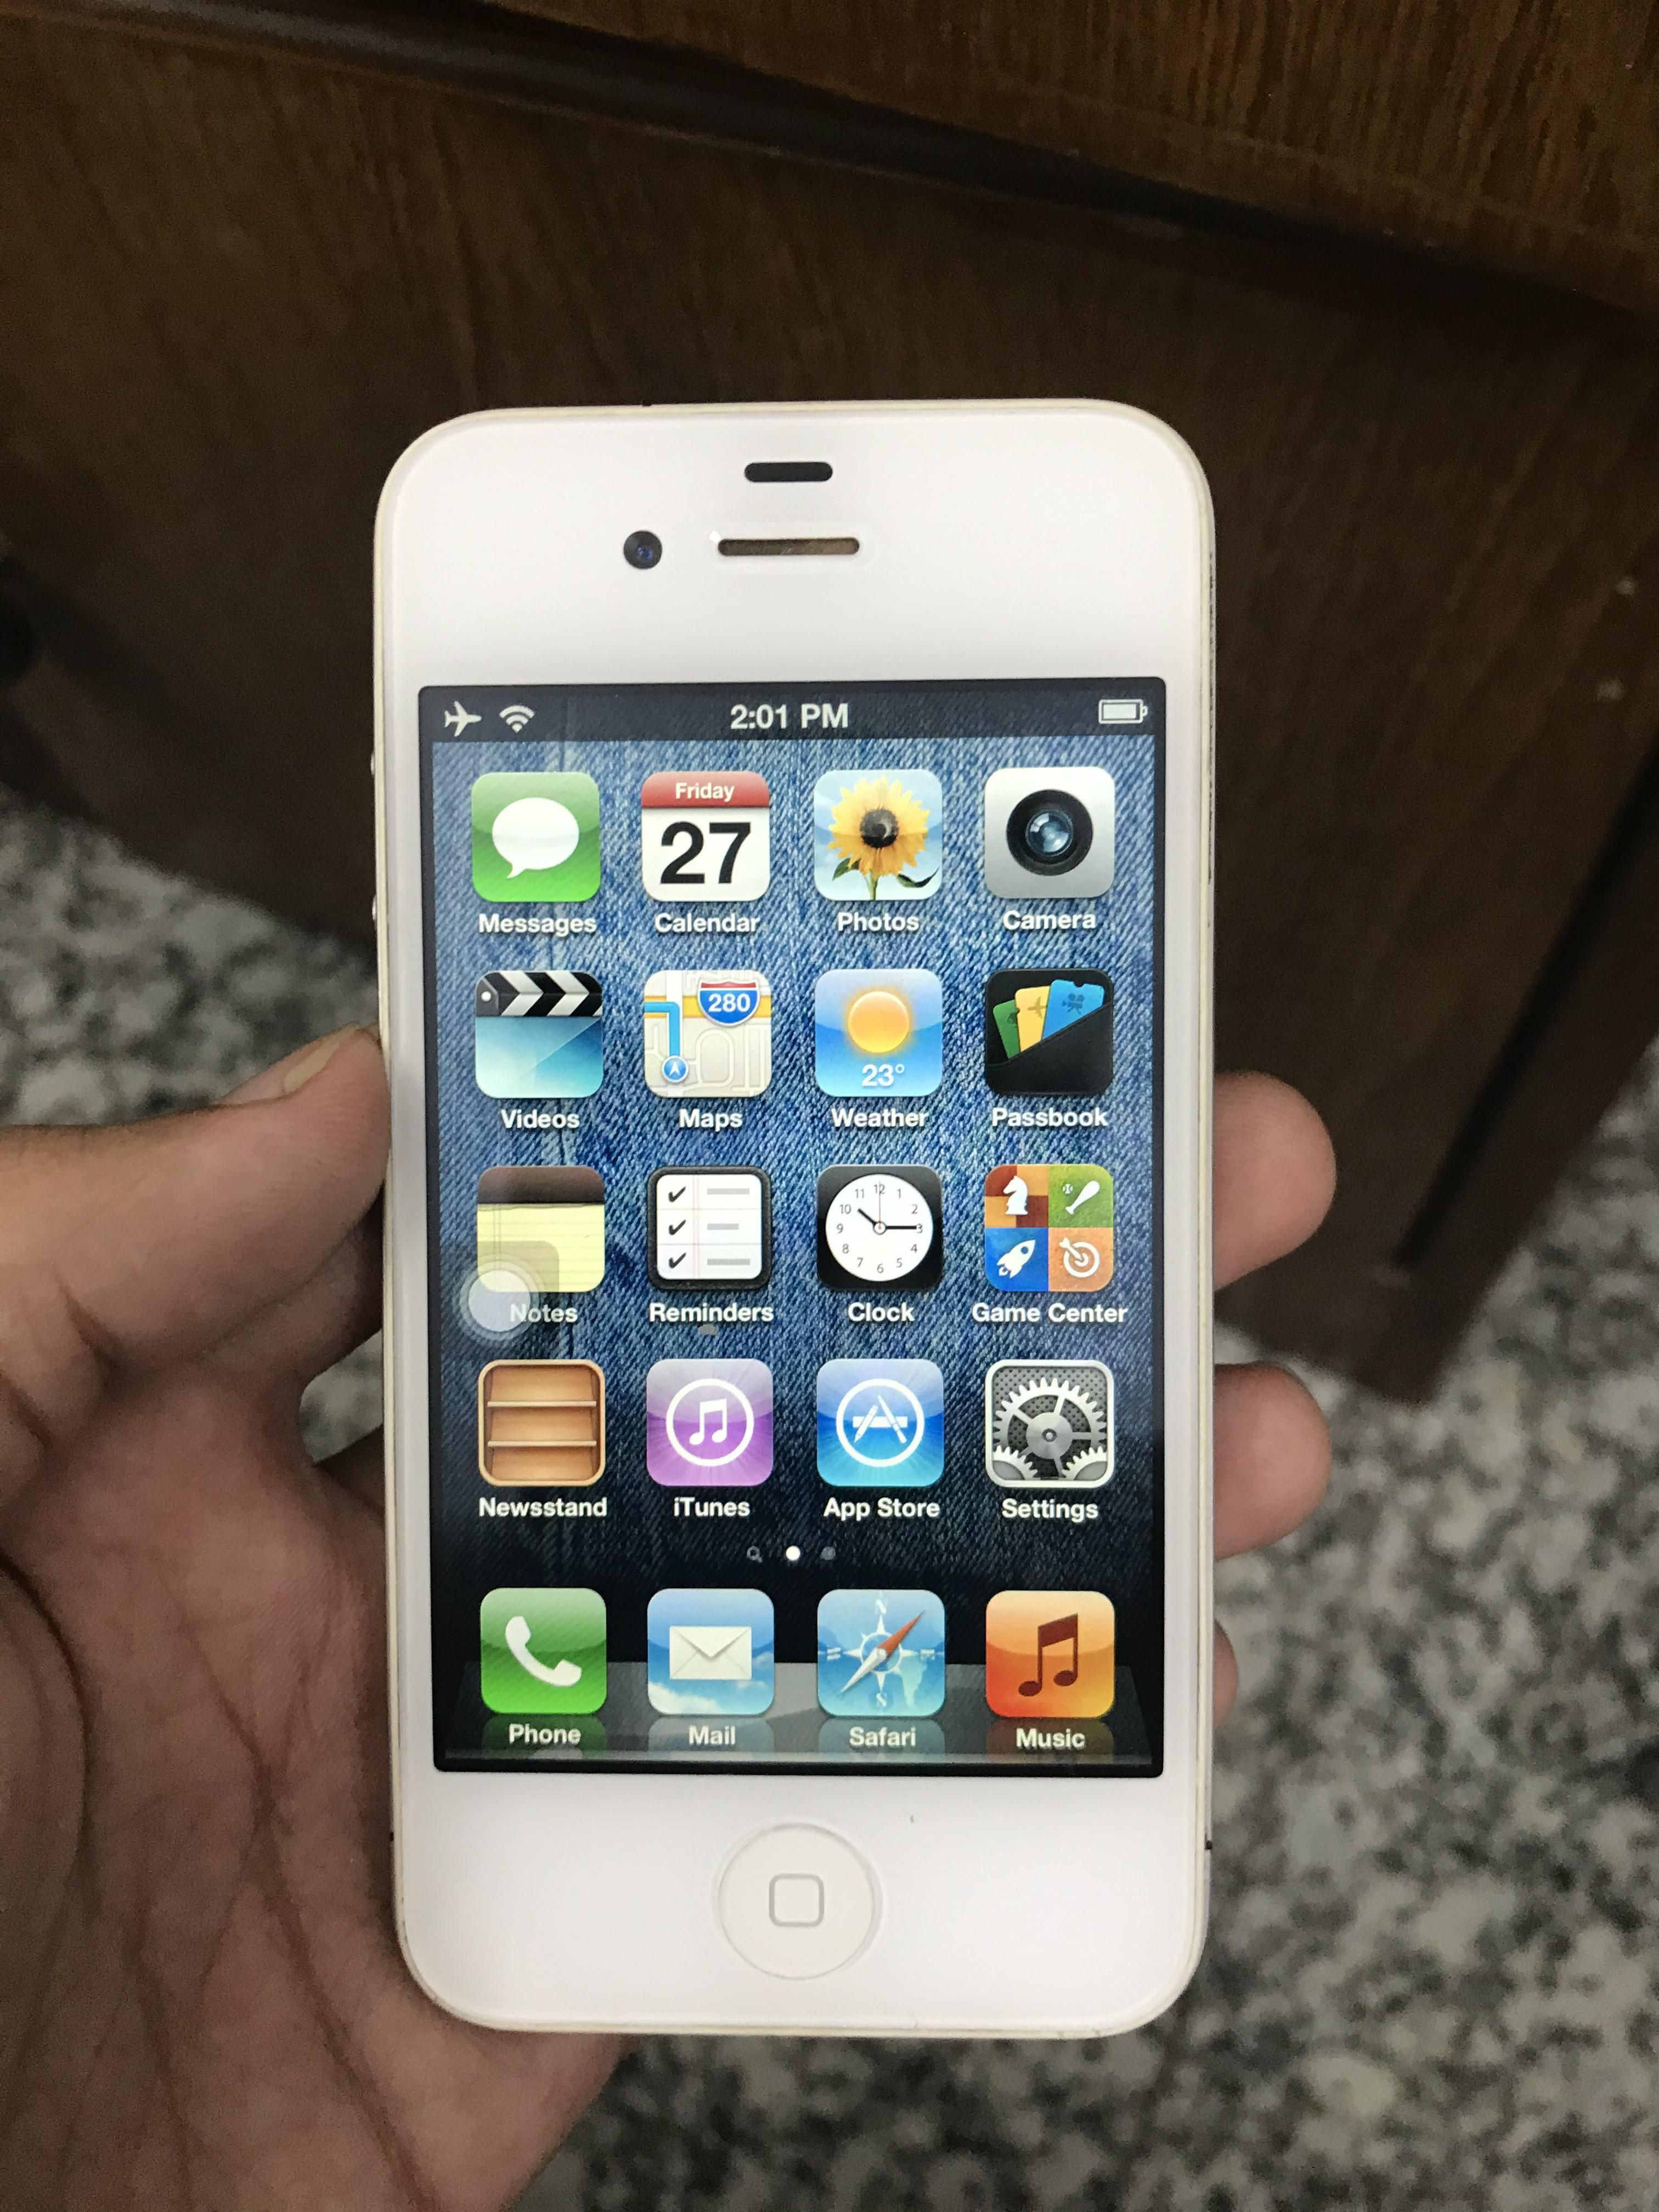 Just Found My Iphone 4 On Ios 6https Ift Tt 2ljpvpz Apple Ipod Touch Iphone Ipod